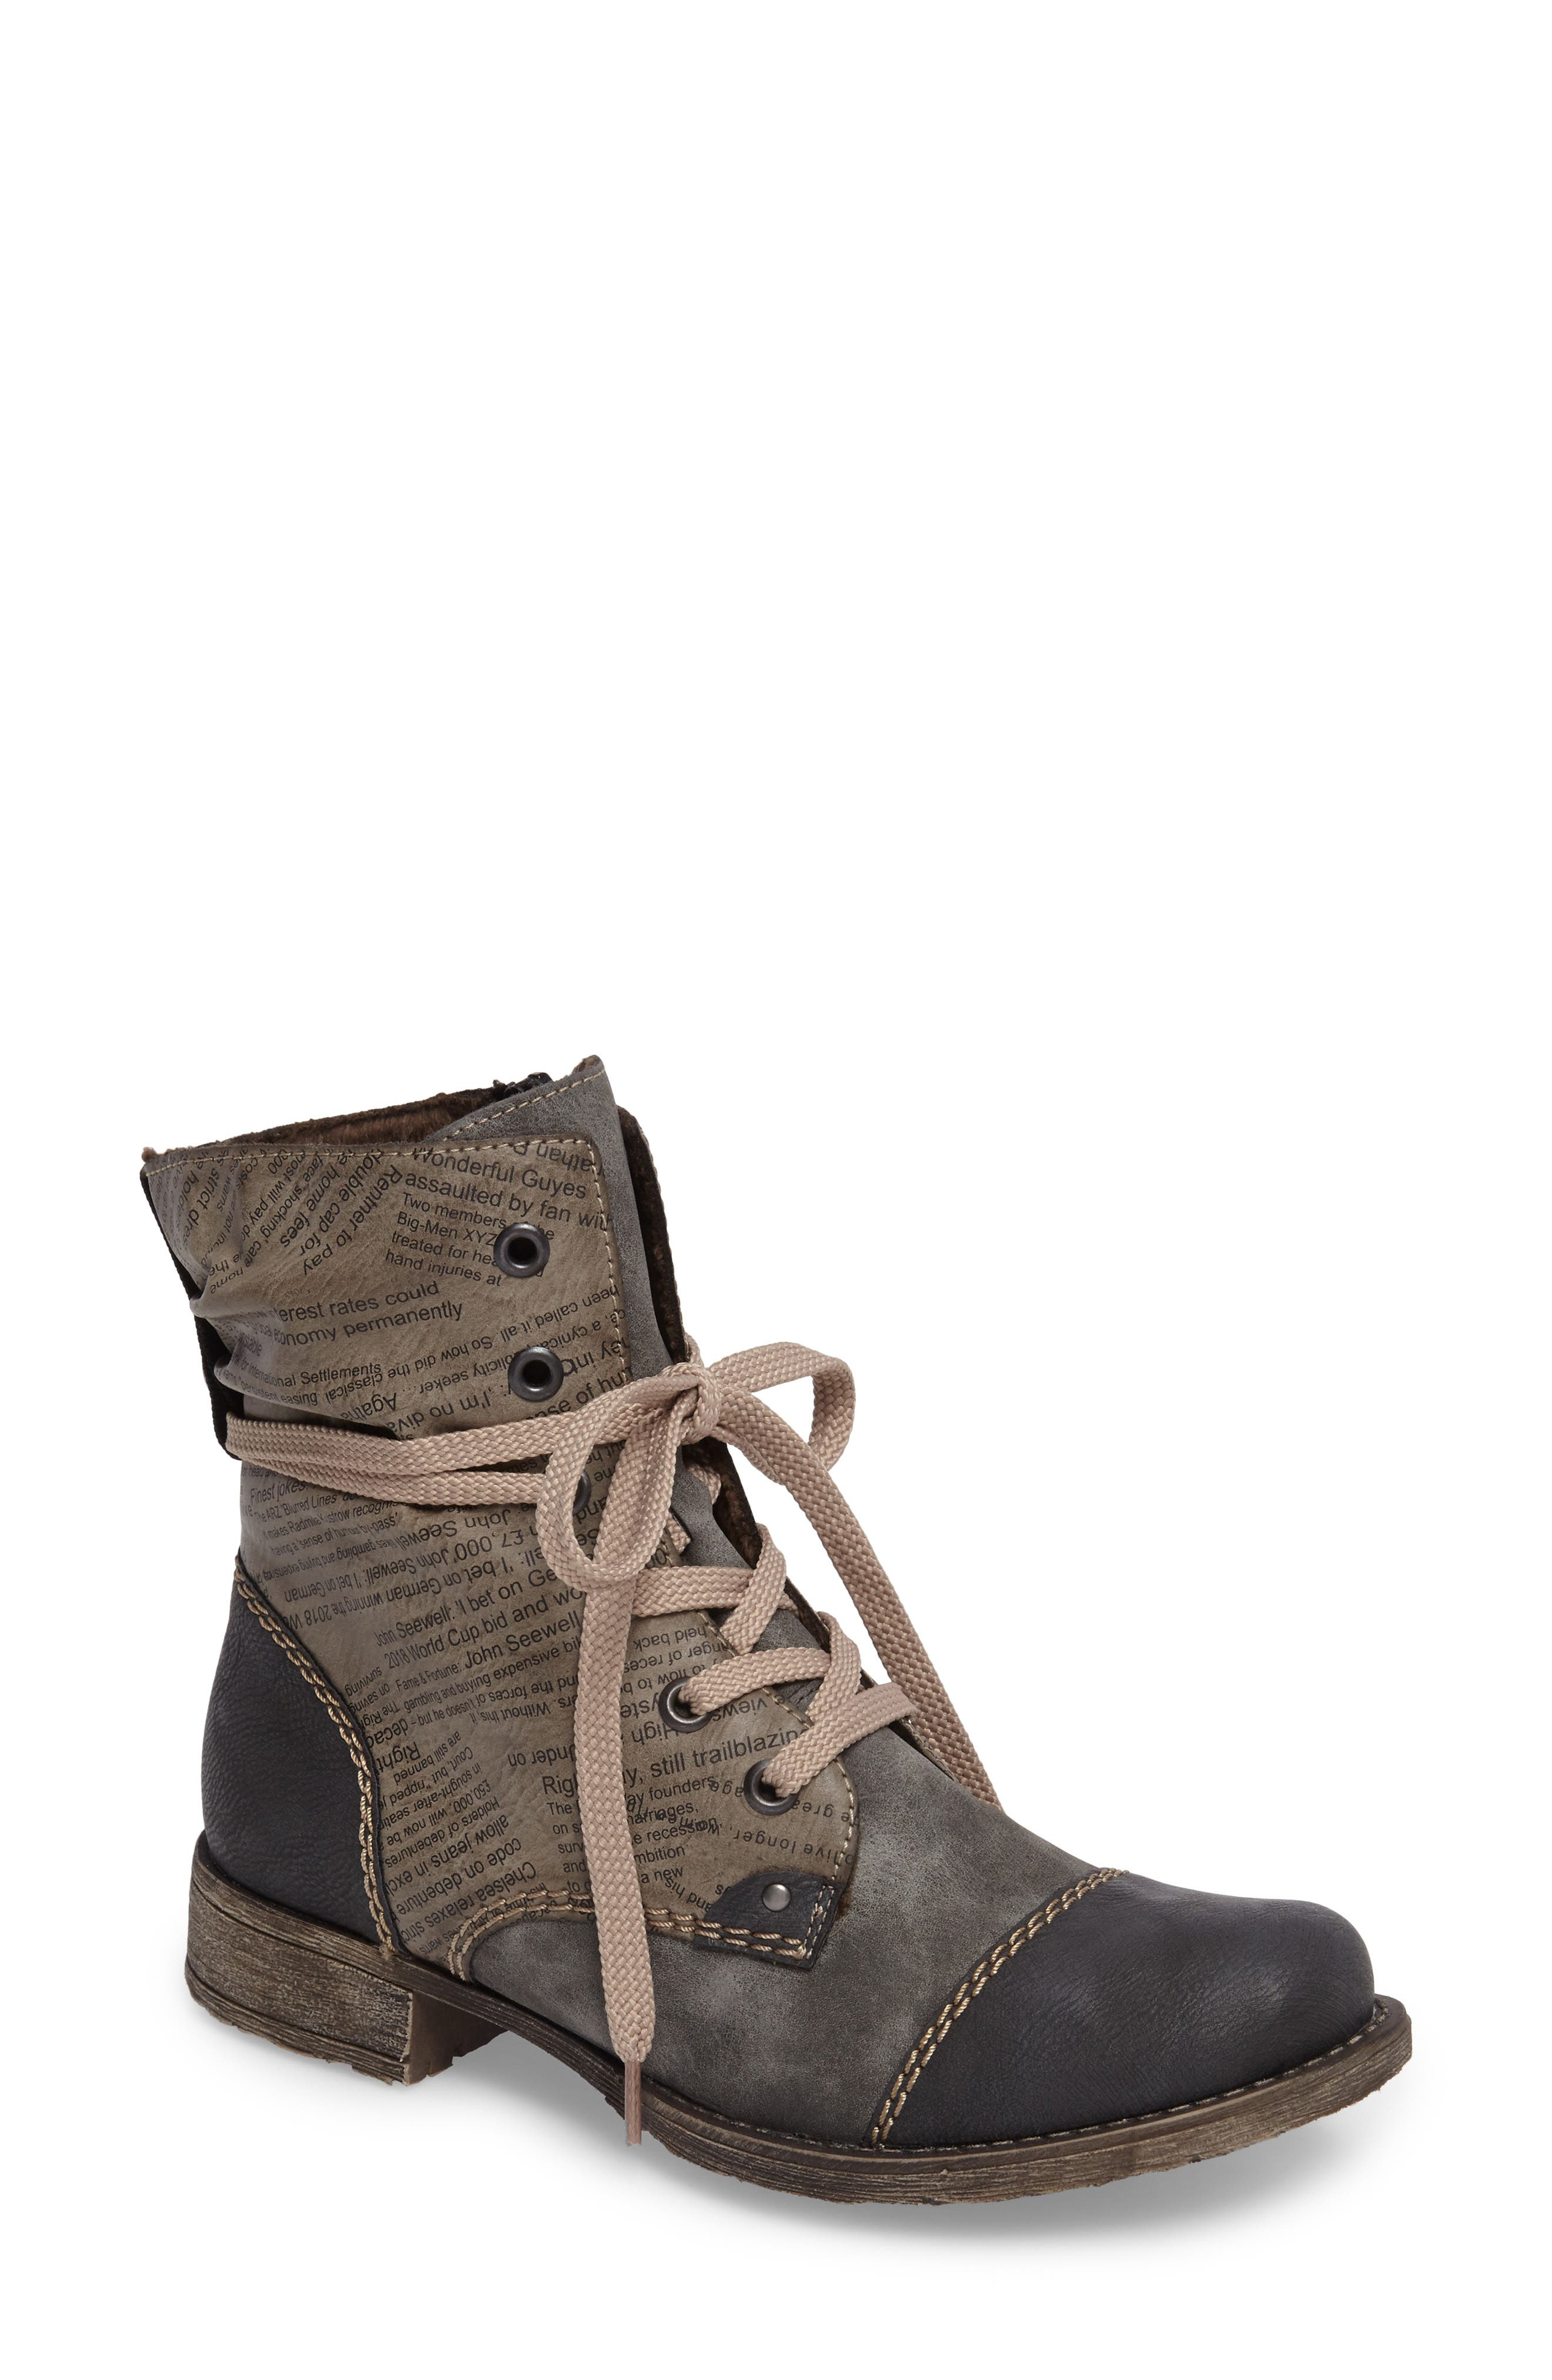 Payton 22 Lace-Up Boot,                             Main thumbnail 1, color,                             SMOKE FAUX LEATHER